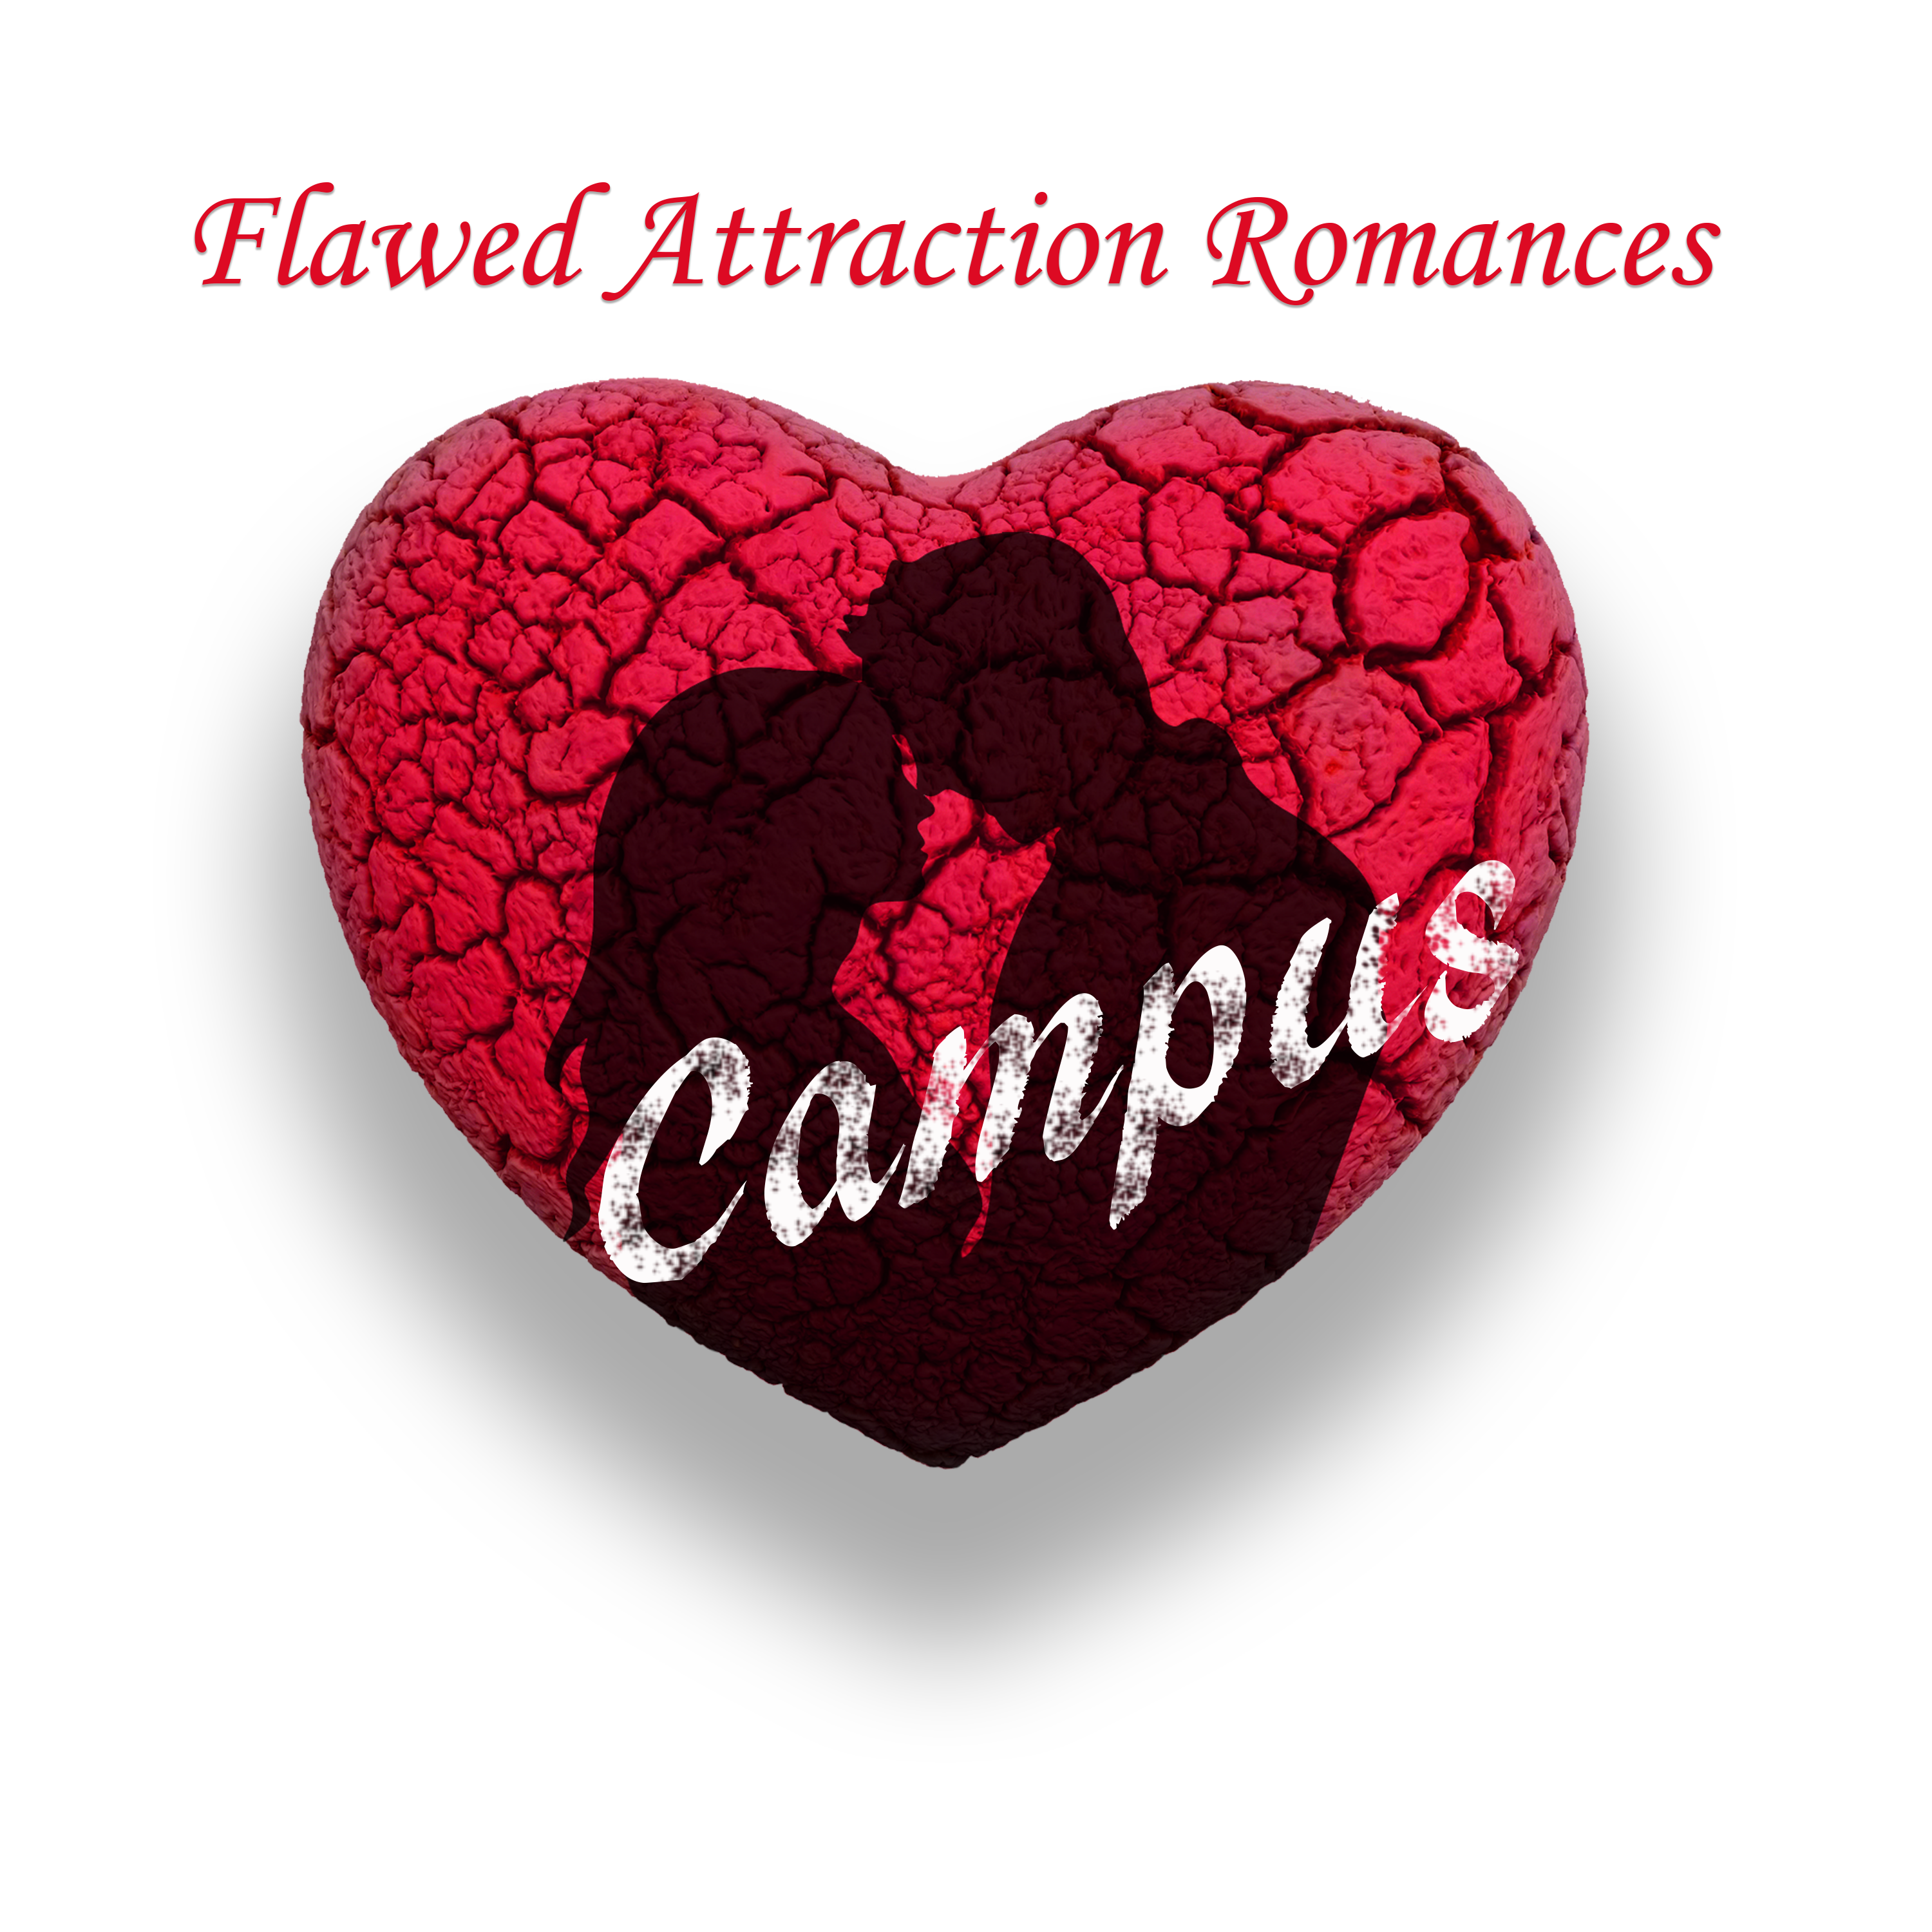 Flawed Attraction Romances Icon - Campus